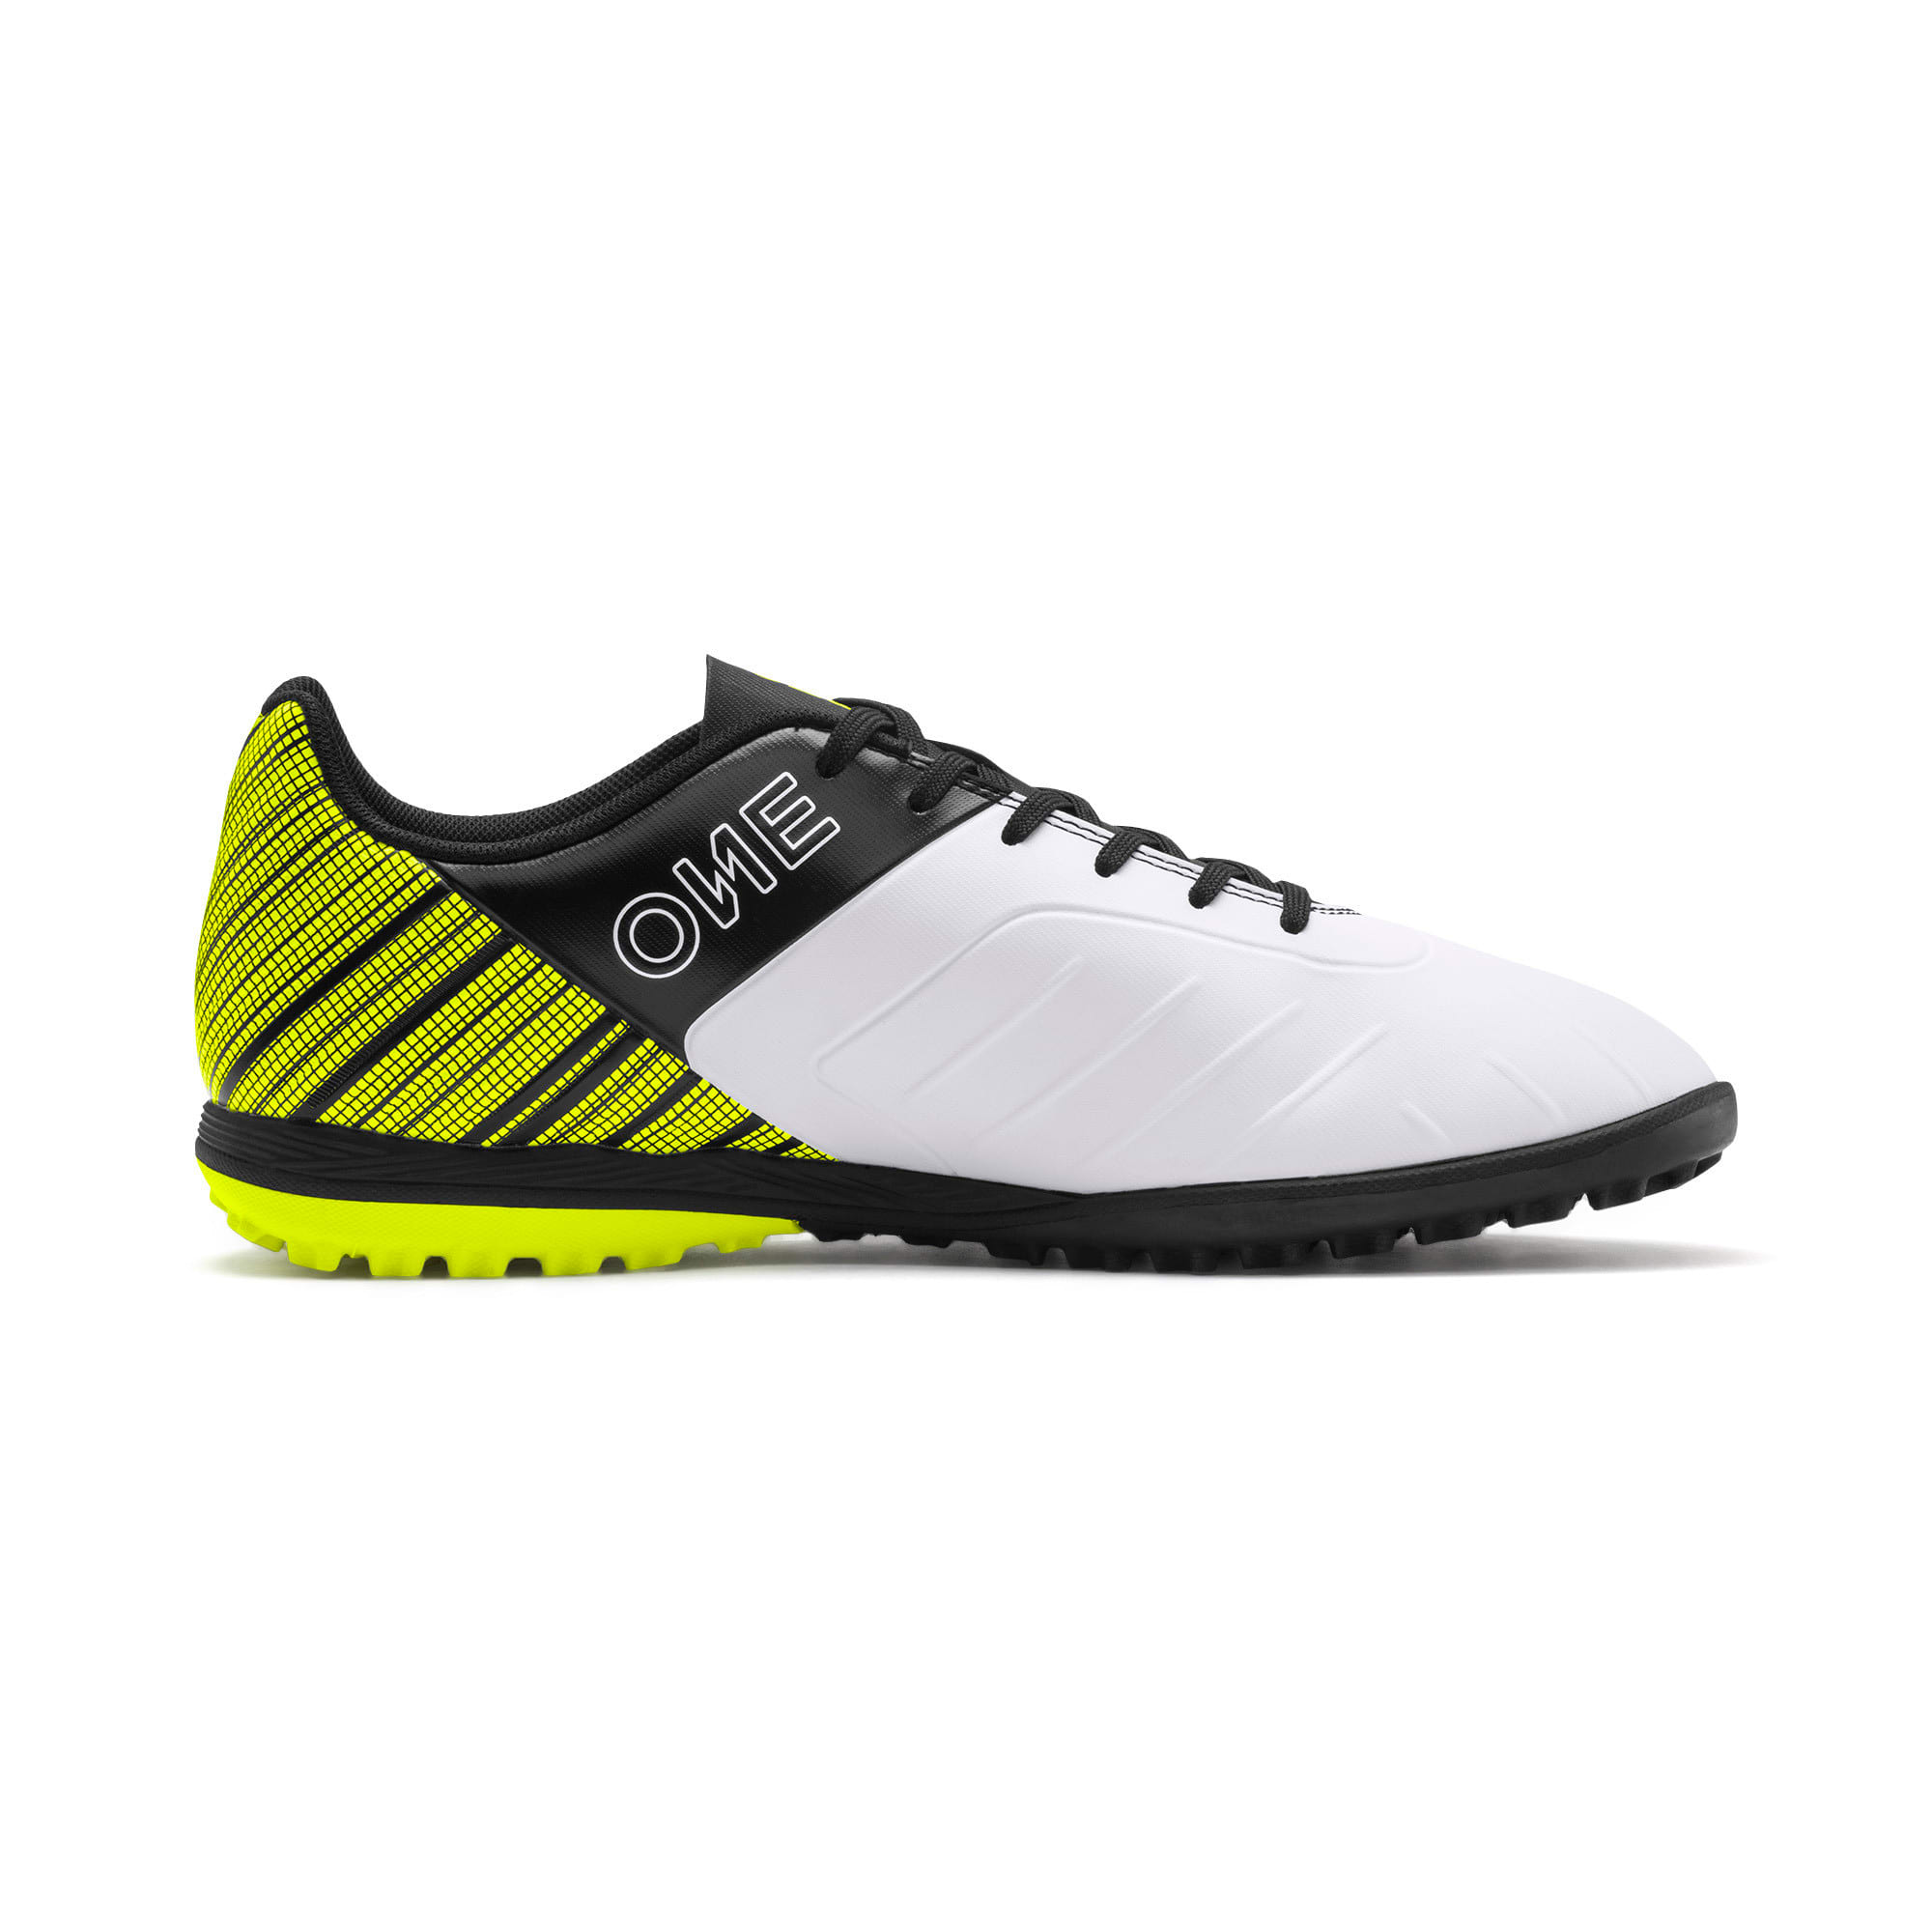 Thumbnail 6 of PUMA ONE 5.4 TT Men's Football Boots, White- Black-Yellow Alert, medium